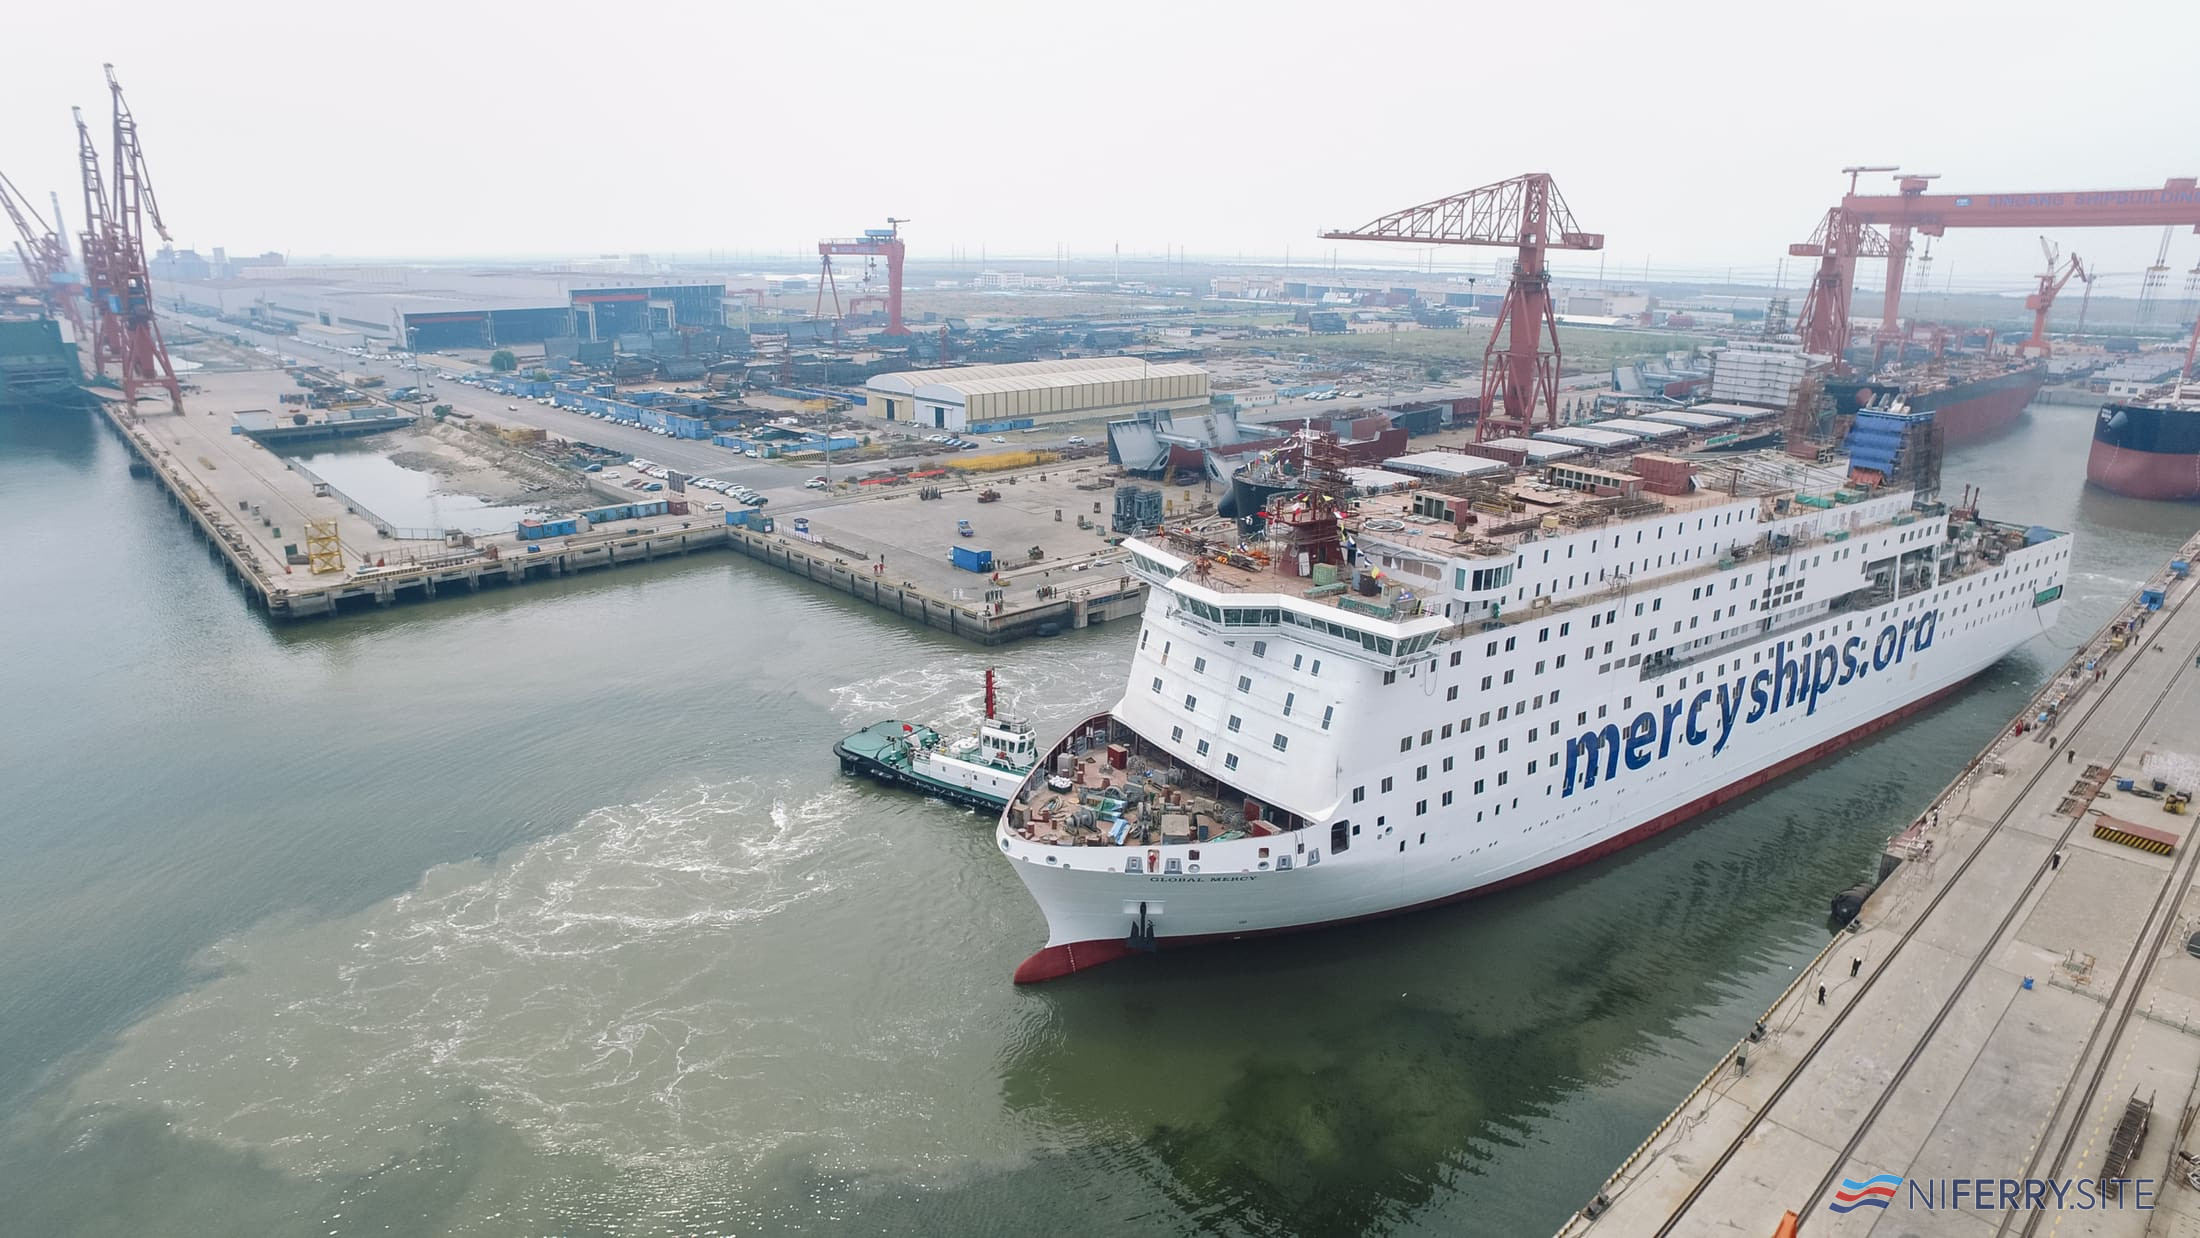 The Global Mercy changing berths after being painted. Stena RoRo